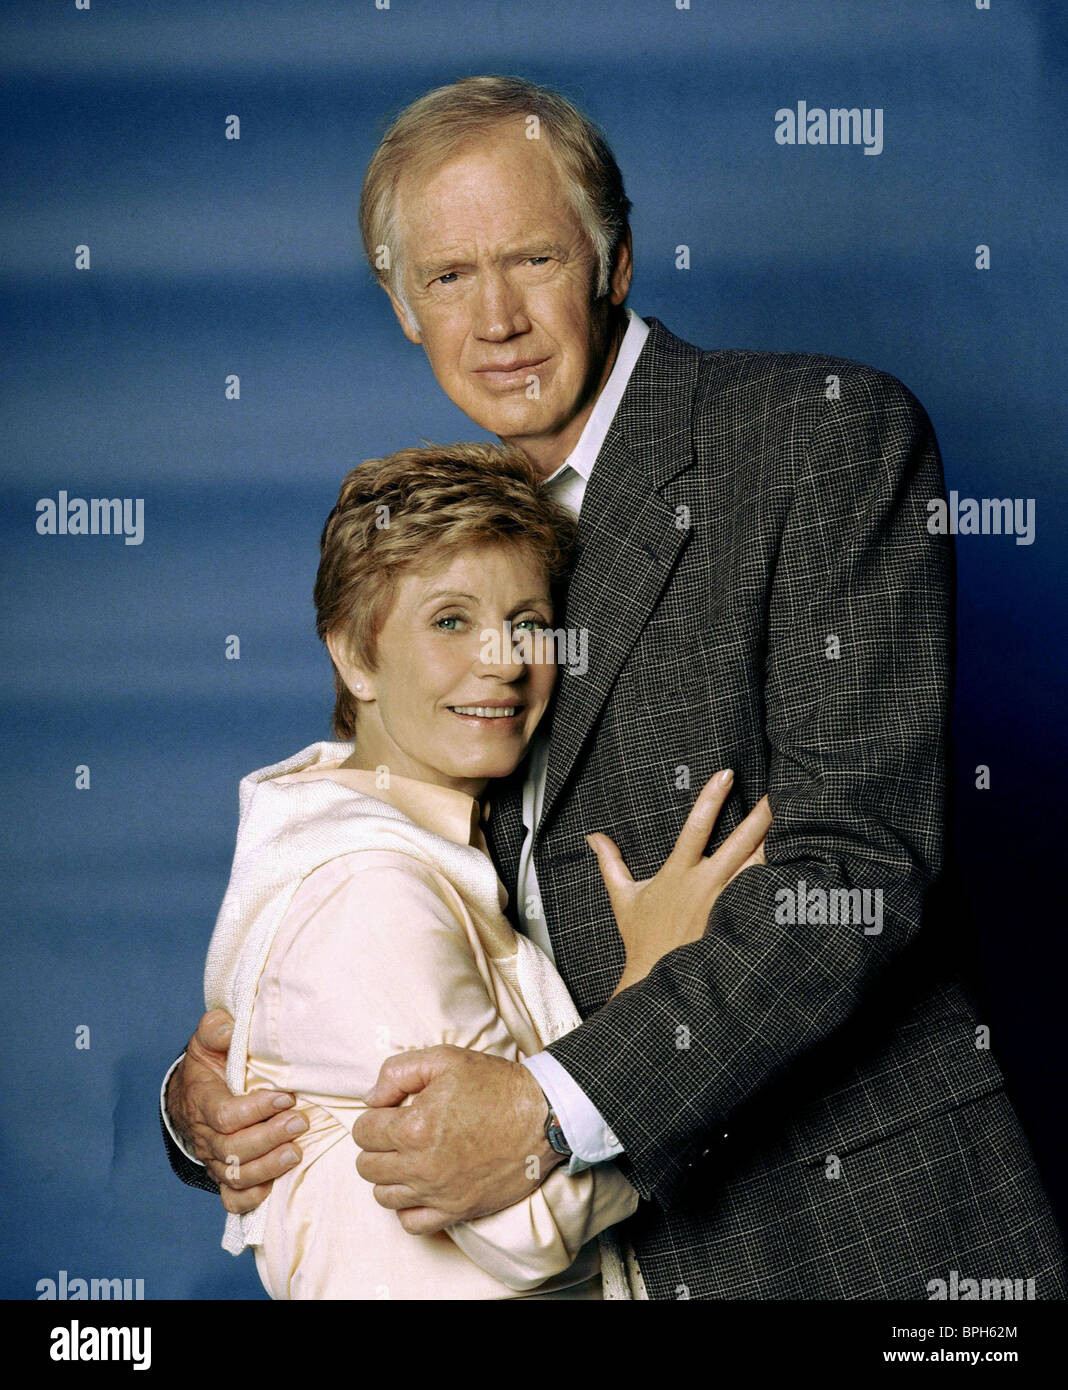 PATTY DUKE & RONNY COX LOVE LESSONS/A TIME TO DECIDE (2000) - Stock Image